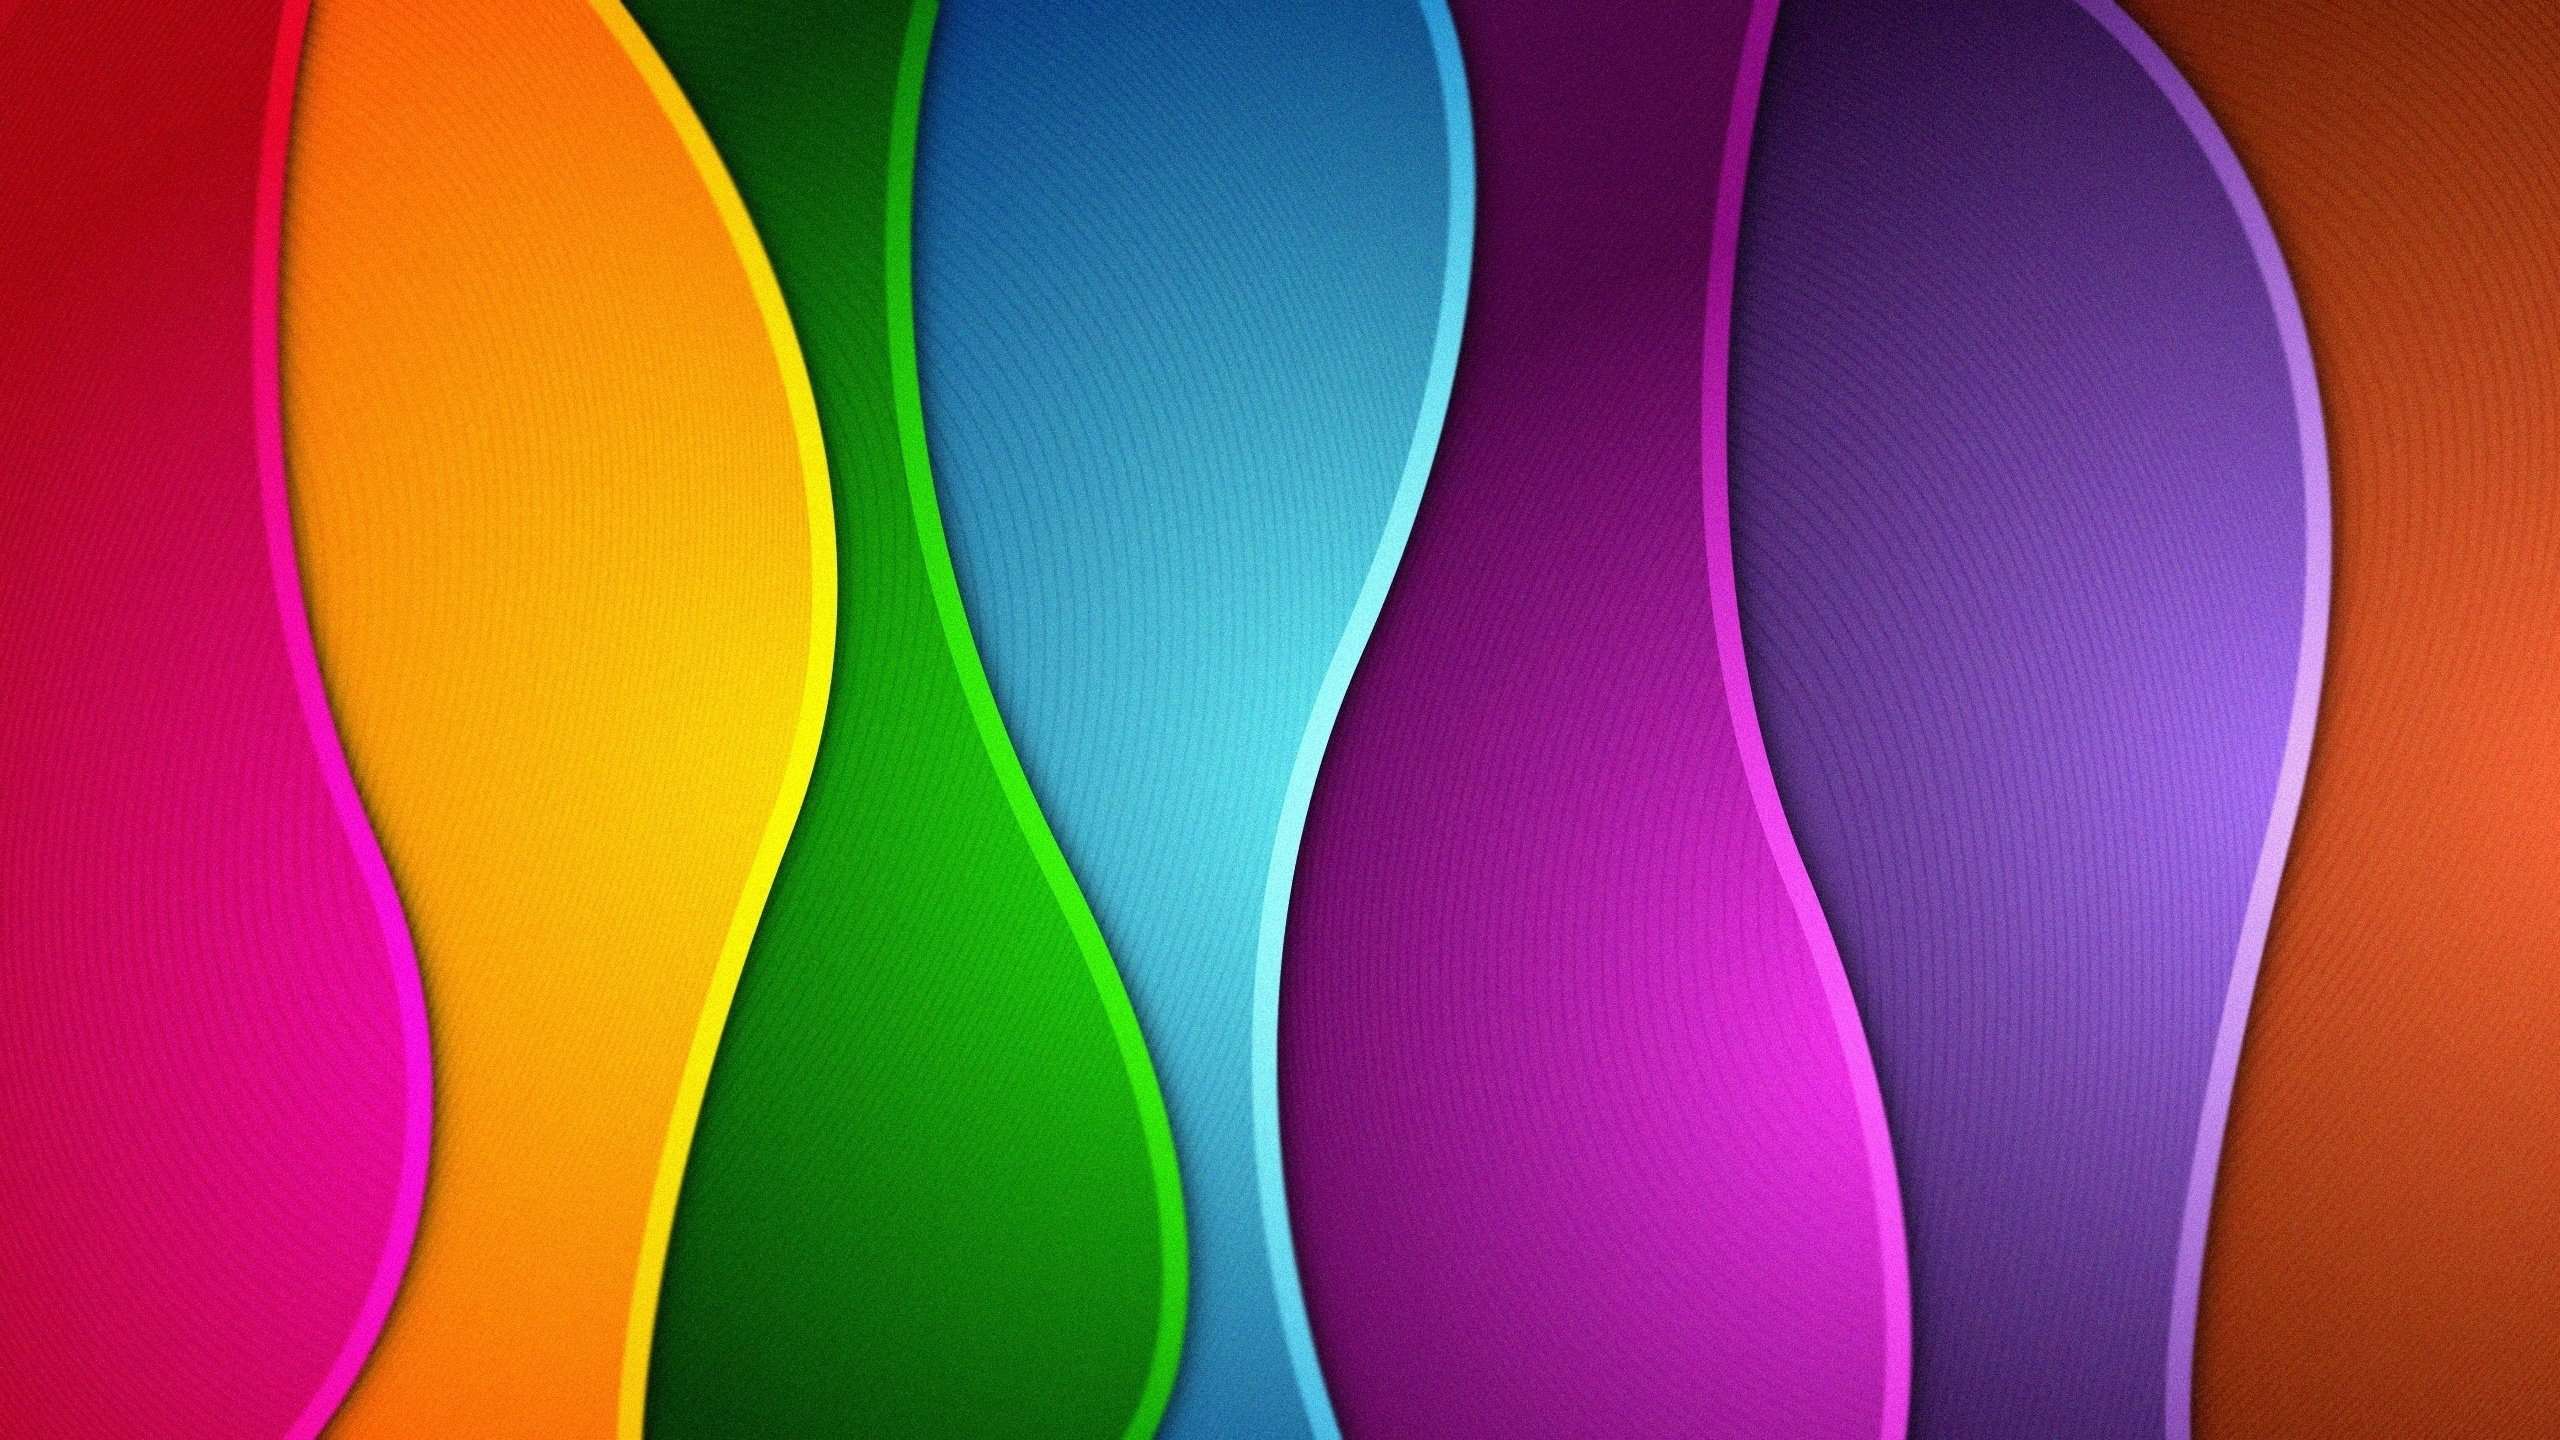 Awesome Colorful pattern free wallpaper ID:232489 for hd 2560x1440 computer